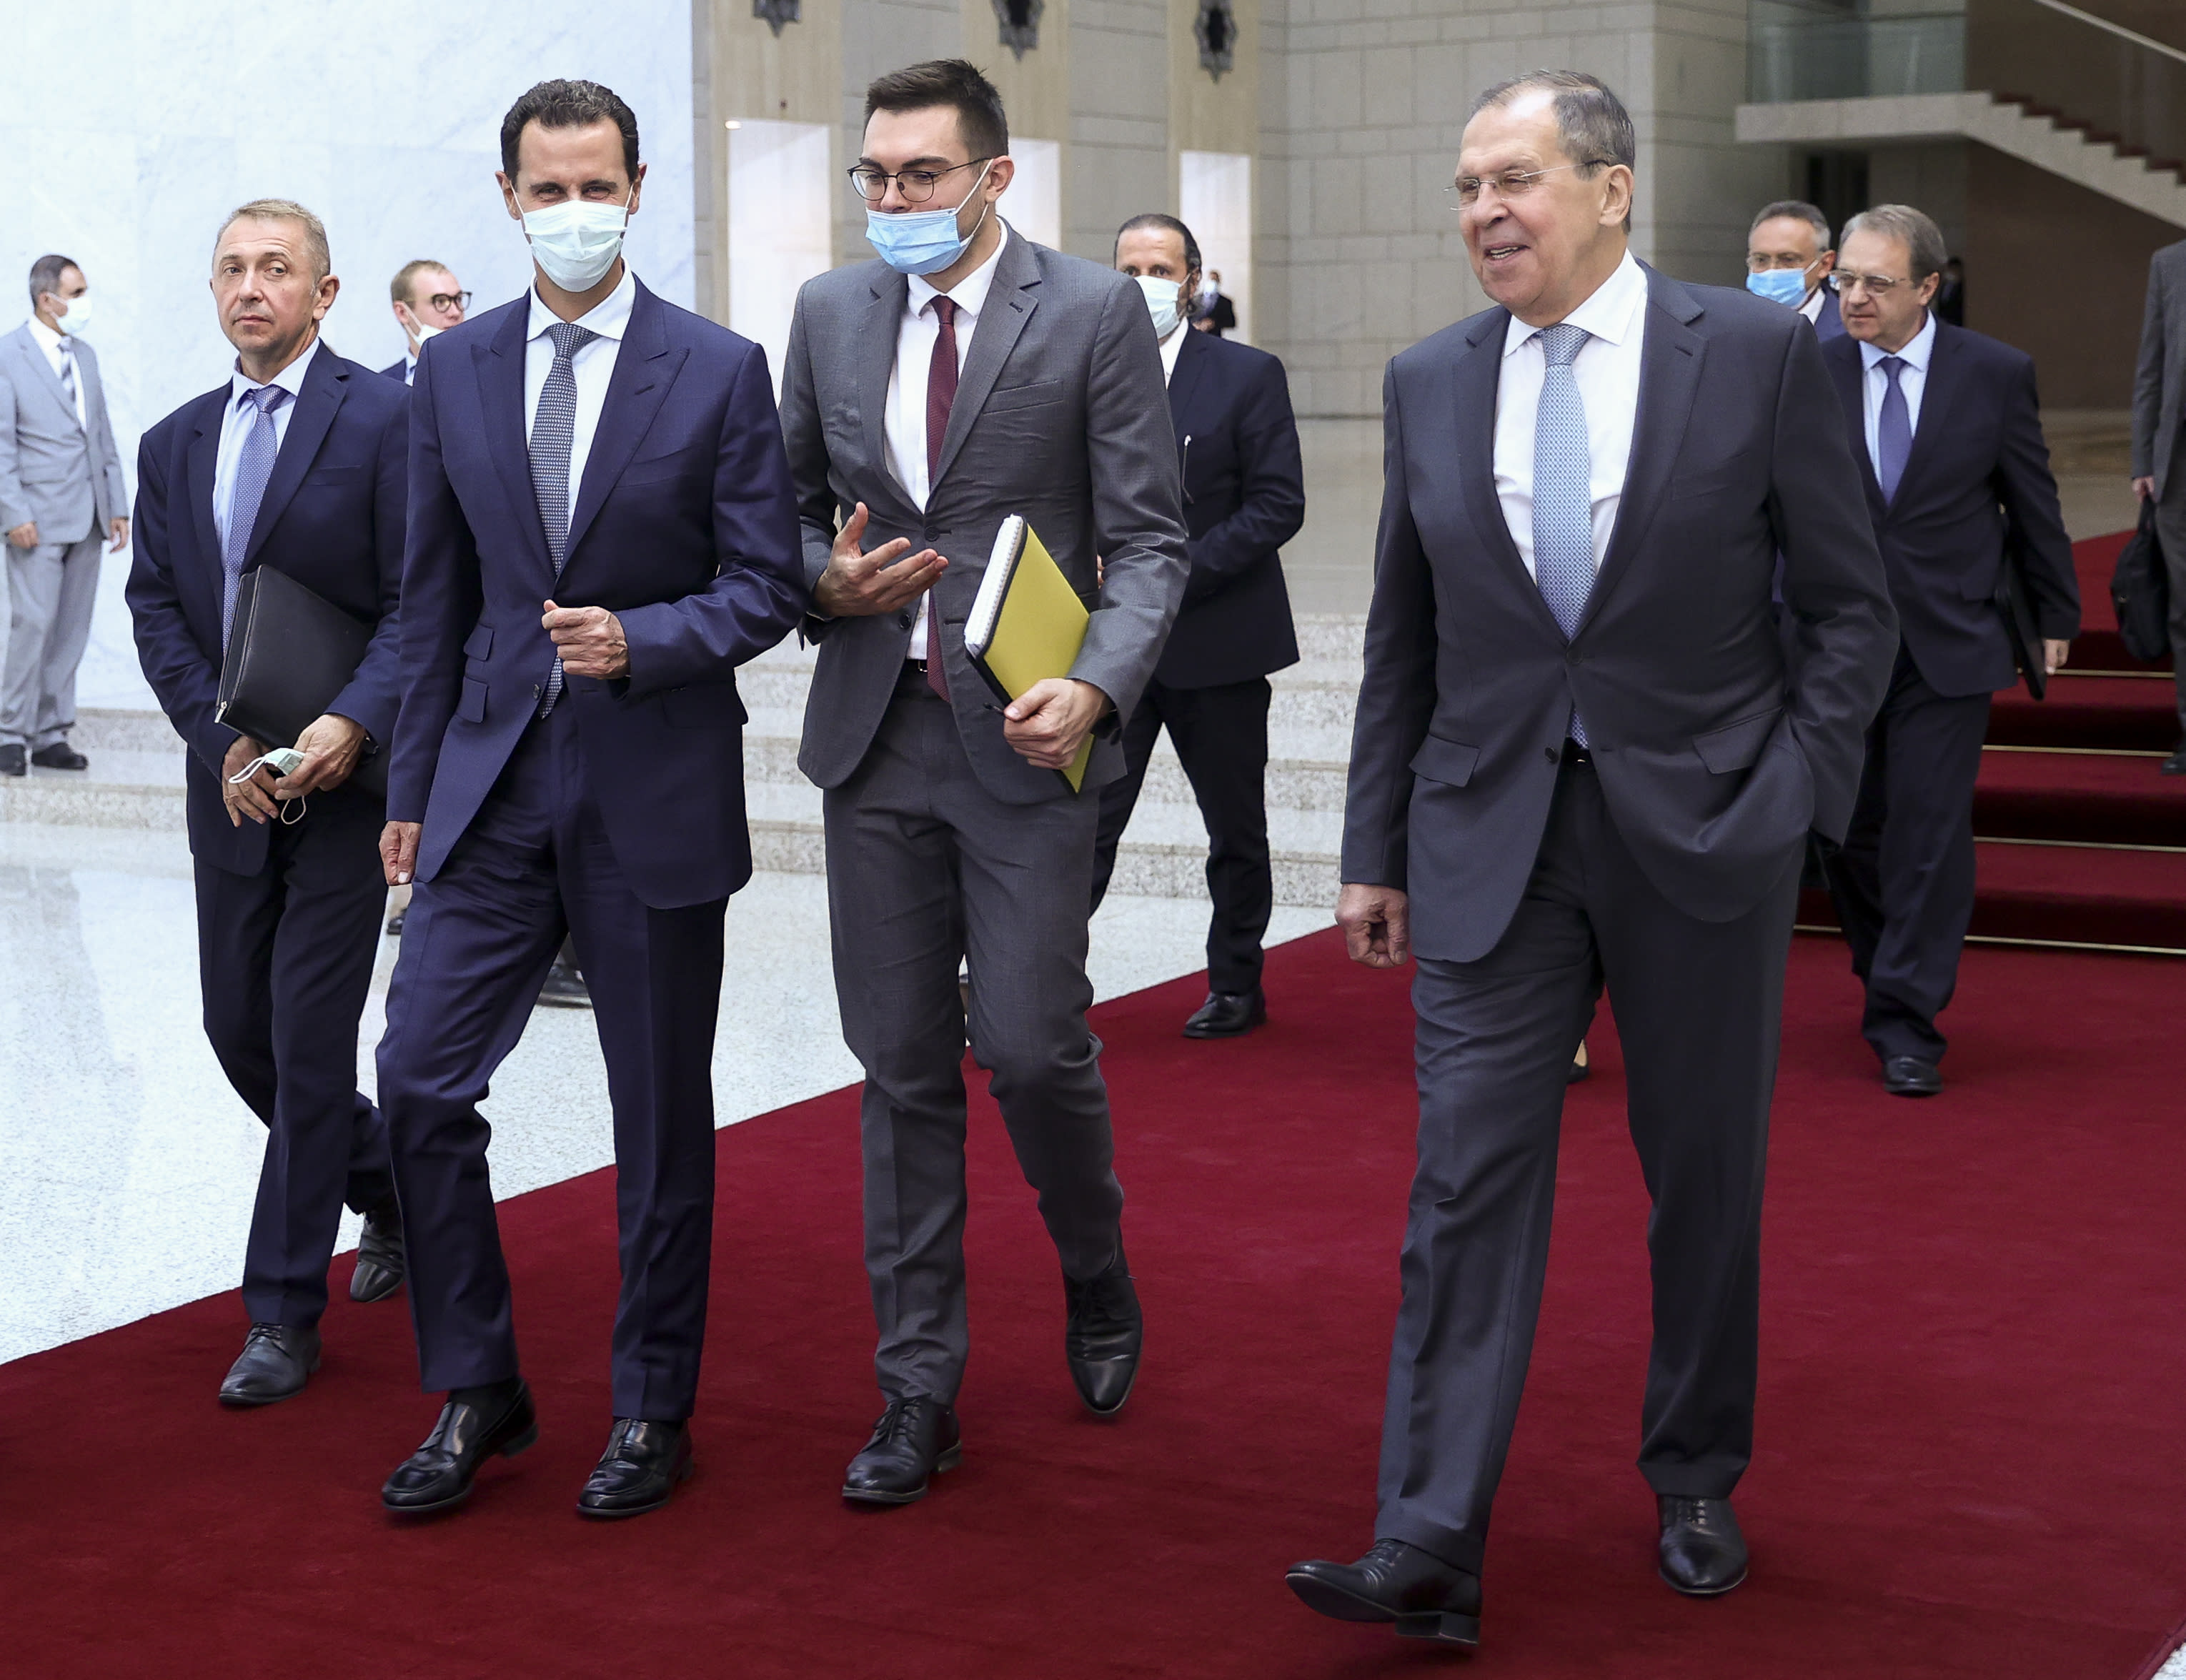 In this photo released by Russian Foreign Ministry Press Service, Russian Foreign Minister Sergey Lavrov, right, and Syrian President Bashar al-Assad, second left, walk after their talks in Damascus, Syria, Monday, Sept. 7, 2020. Russia's foreign minister has met with Syrian President Bashar Assad shortly after landing in the Syrian capital on his first visit since 2012. Russia has been a close ally of Assad in Syria's long and bloody nine-year-long civil war, lending his government in Damascus vital military, economic and political support. (Russian Foreign Ministry Press Service via AP)